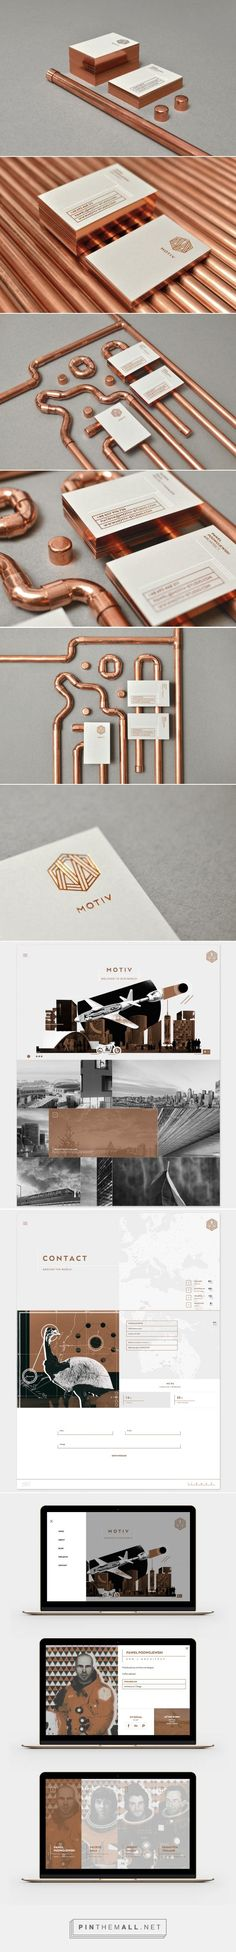 MOTIV stationery featuring copper gilded edges on business cards